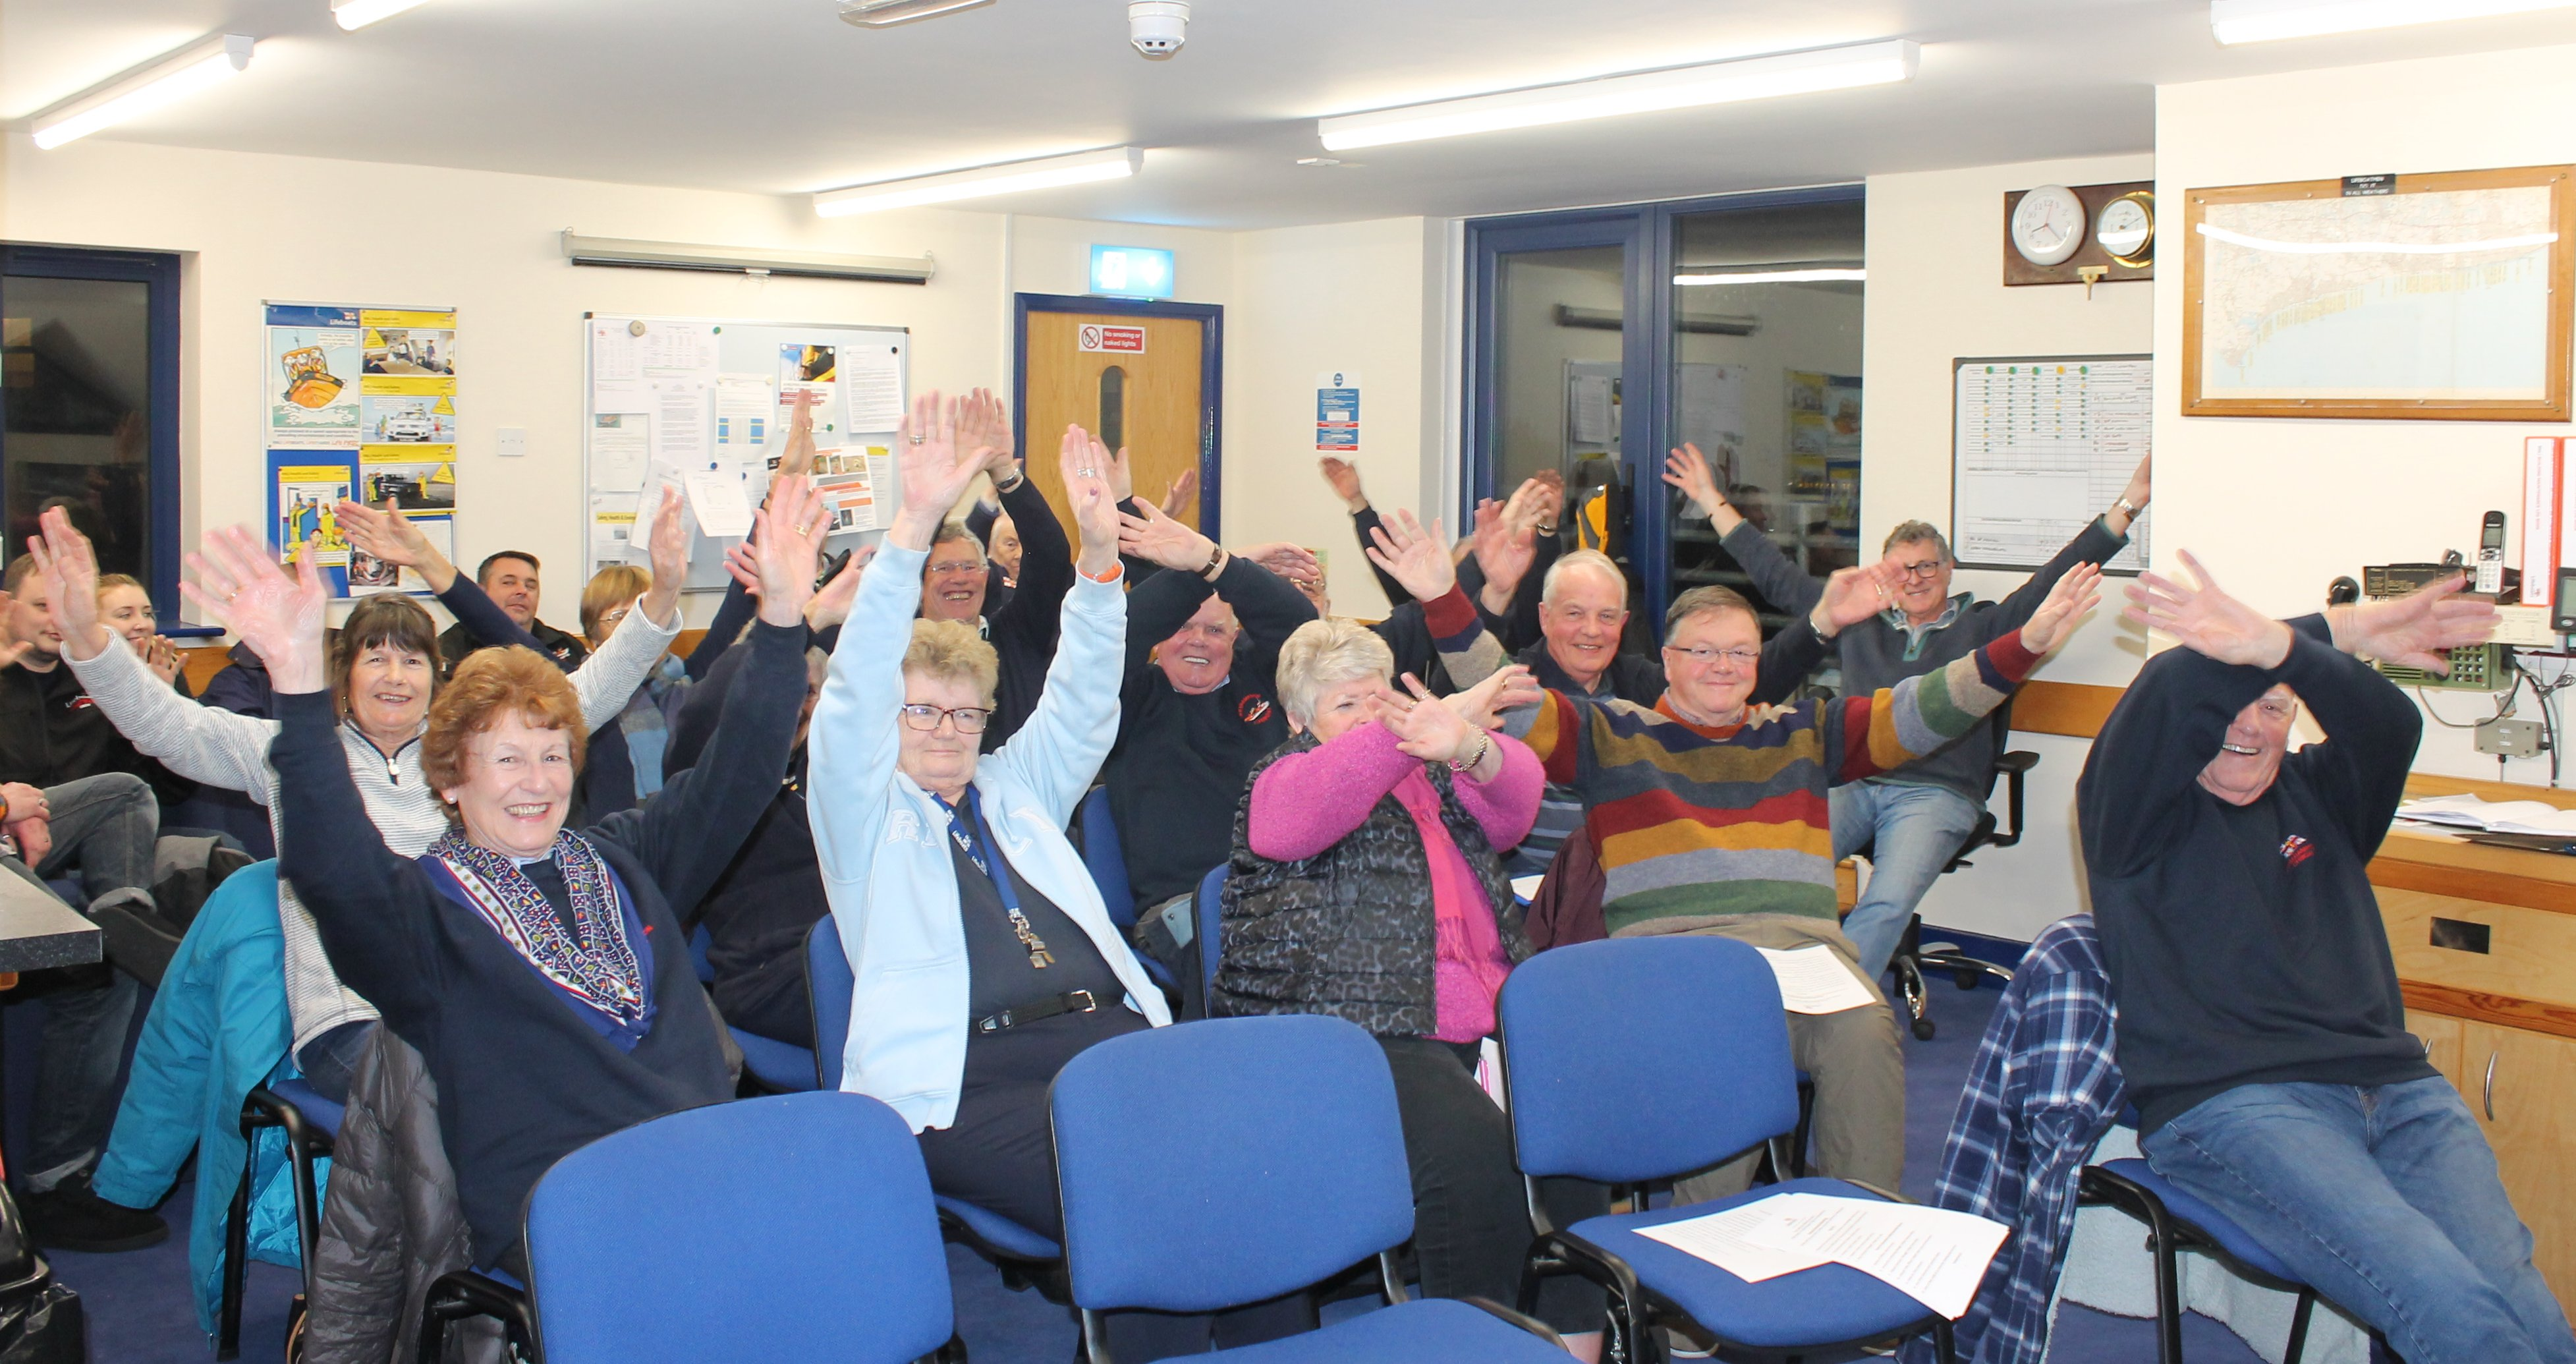 Littlehampton fundraisers demonstrate the distress signal used by sailors to catch people's attention by waving their arms in across their heads